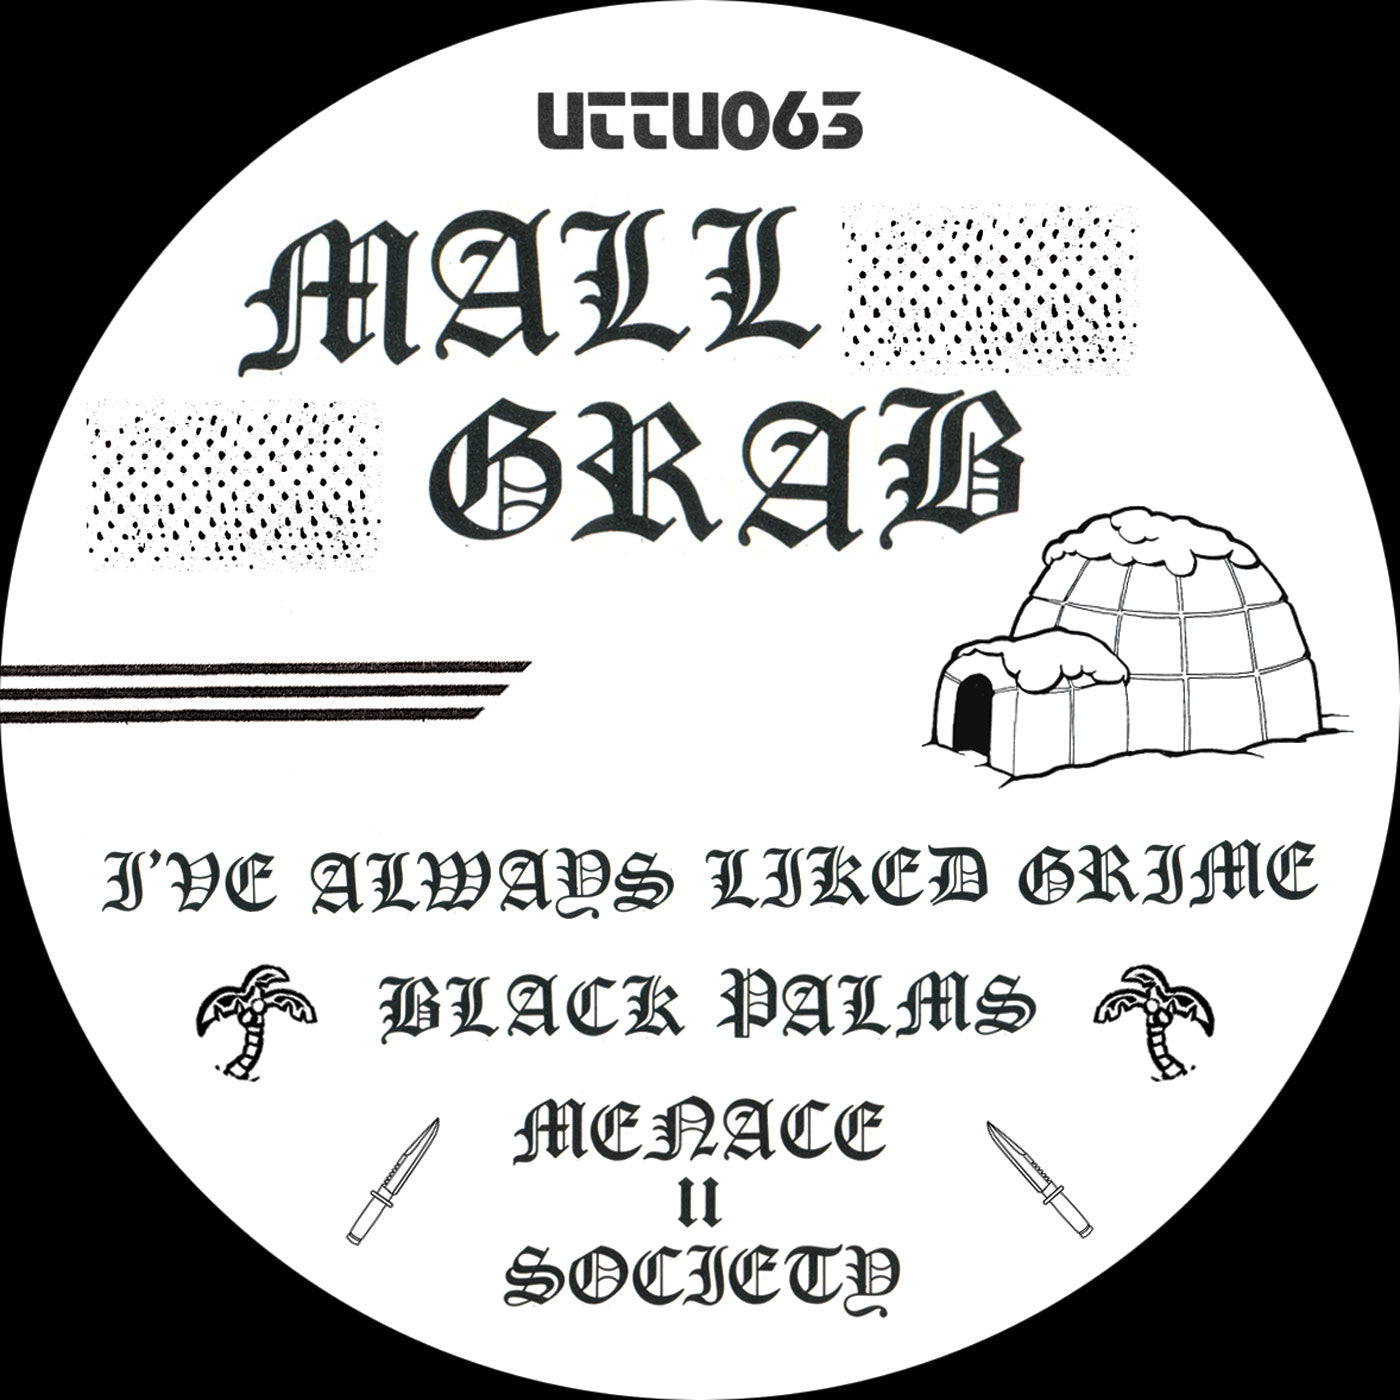 Mall Grab - Menace II Society , Vinyl - Unknown To The Unknown, Unearthed Sounds